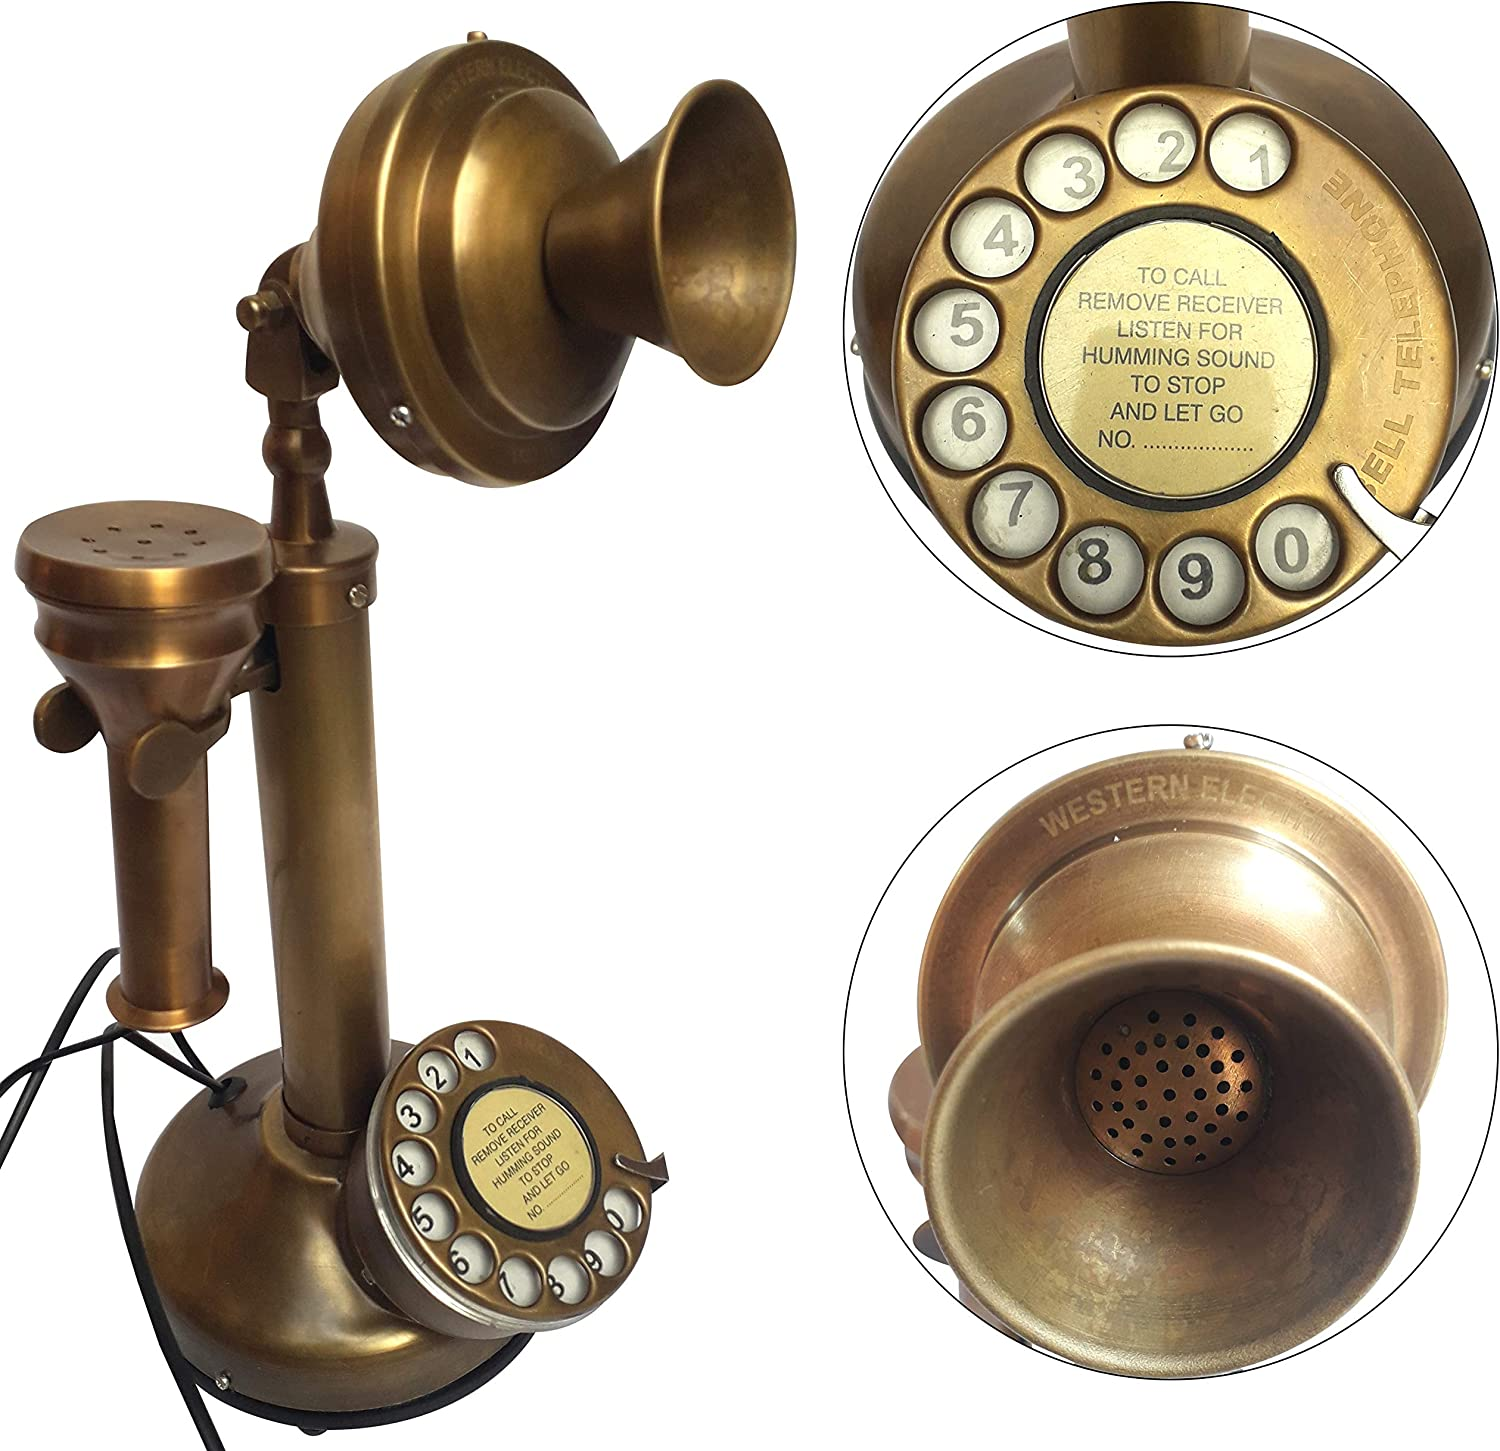 1904 With Ringer Box Here is an original Antique Brass American Telephone and Telegraph Candlestick Original Telephone